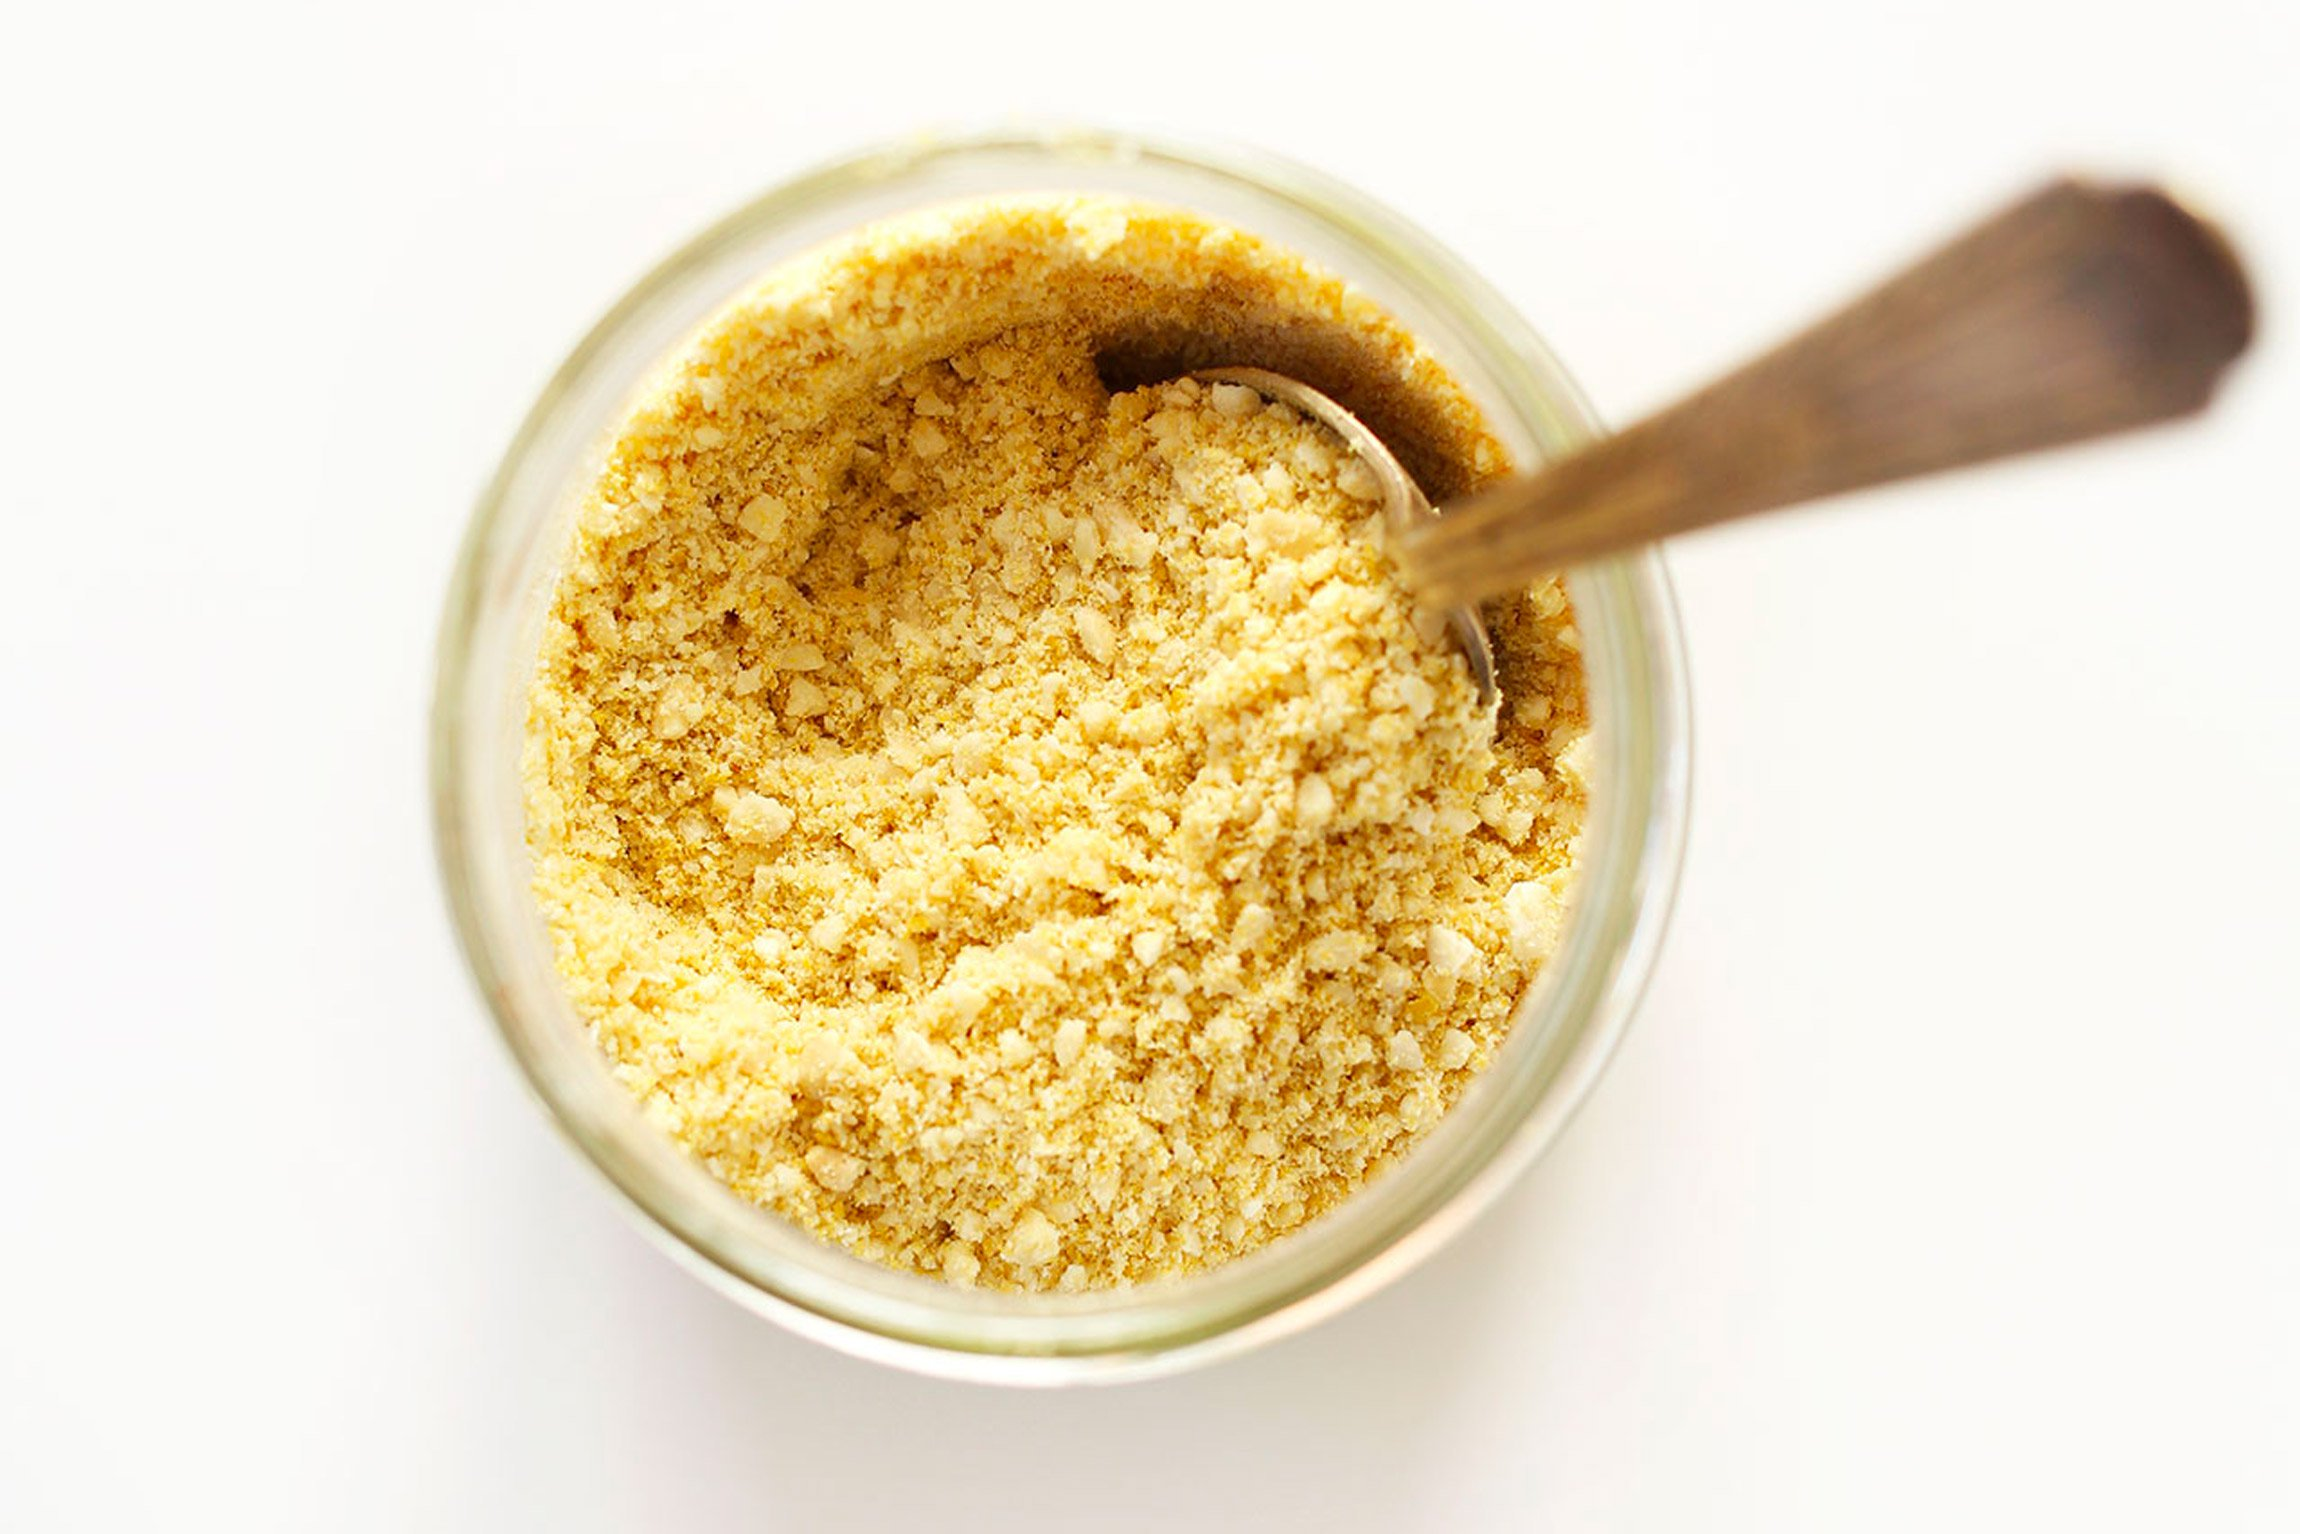 Nutritional Yeast: What Are The Benefits of This Plant-Based